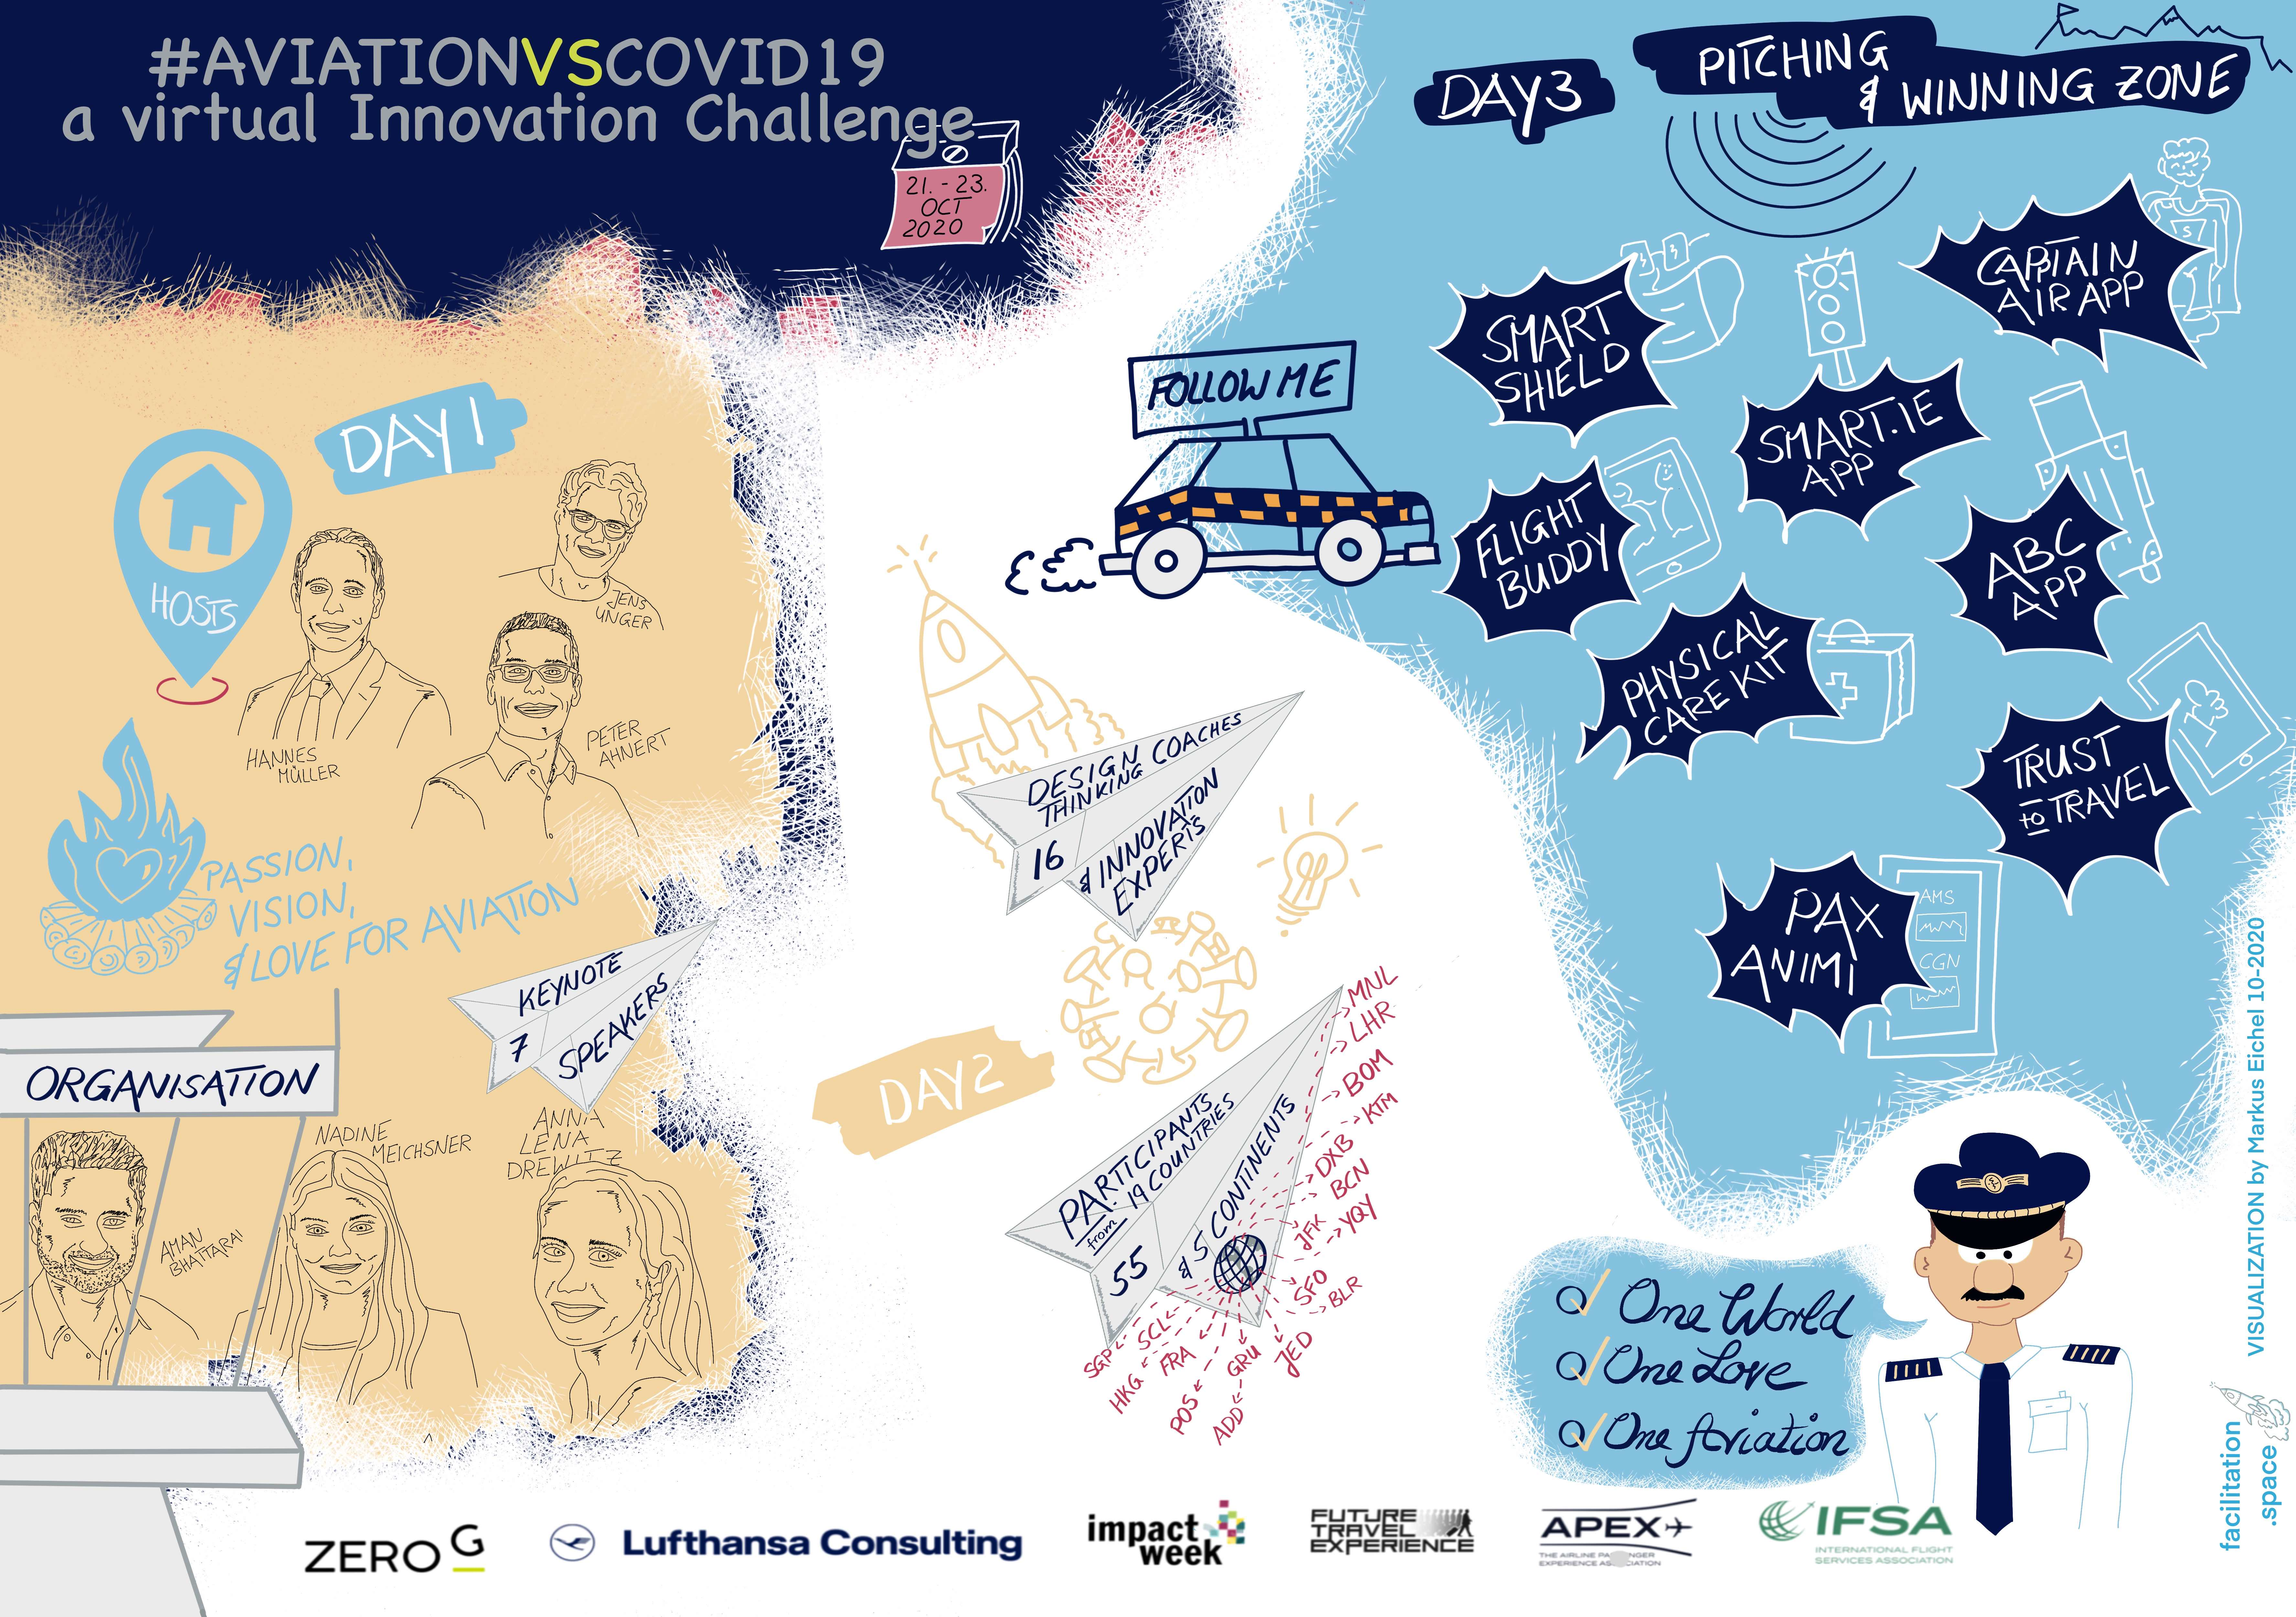 Knowledge Wall AVIATIONvsCOVID19 2020 - visualisation by Markus Eichel from facilitation.space